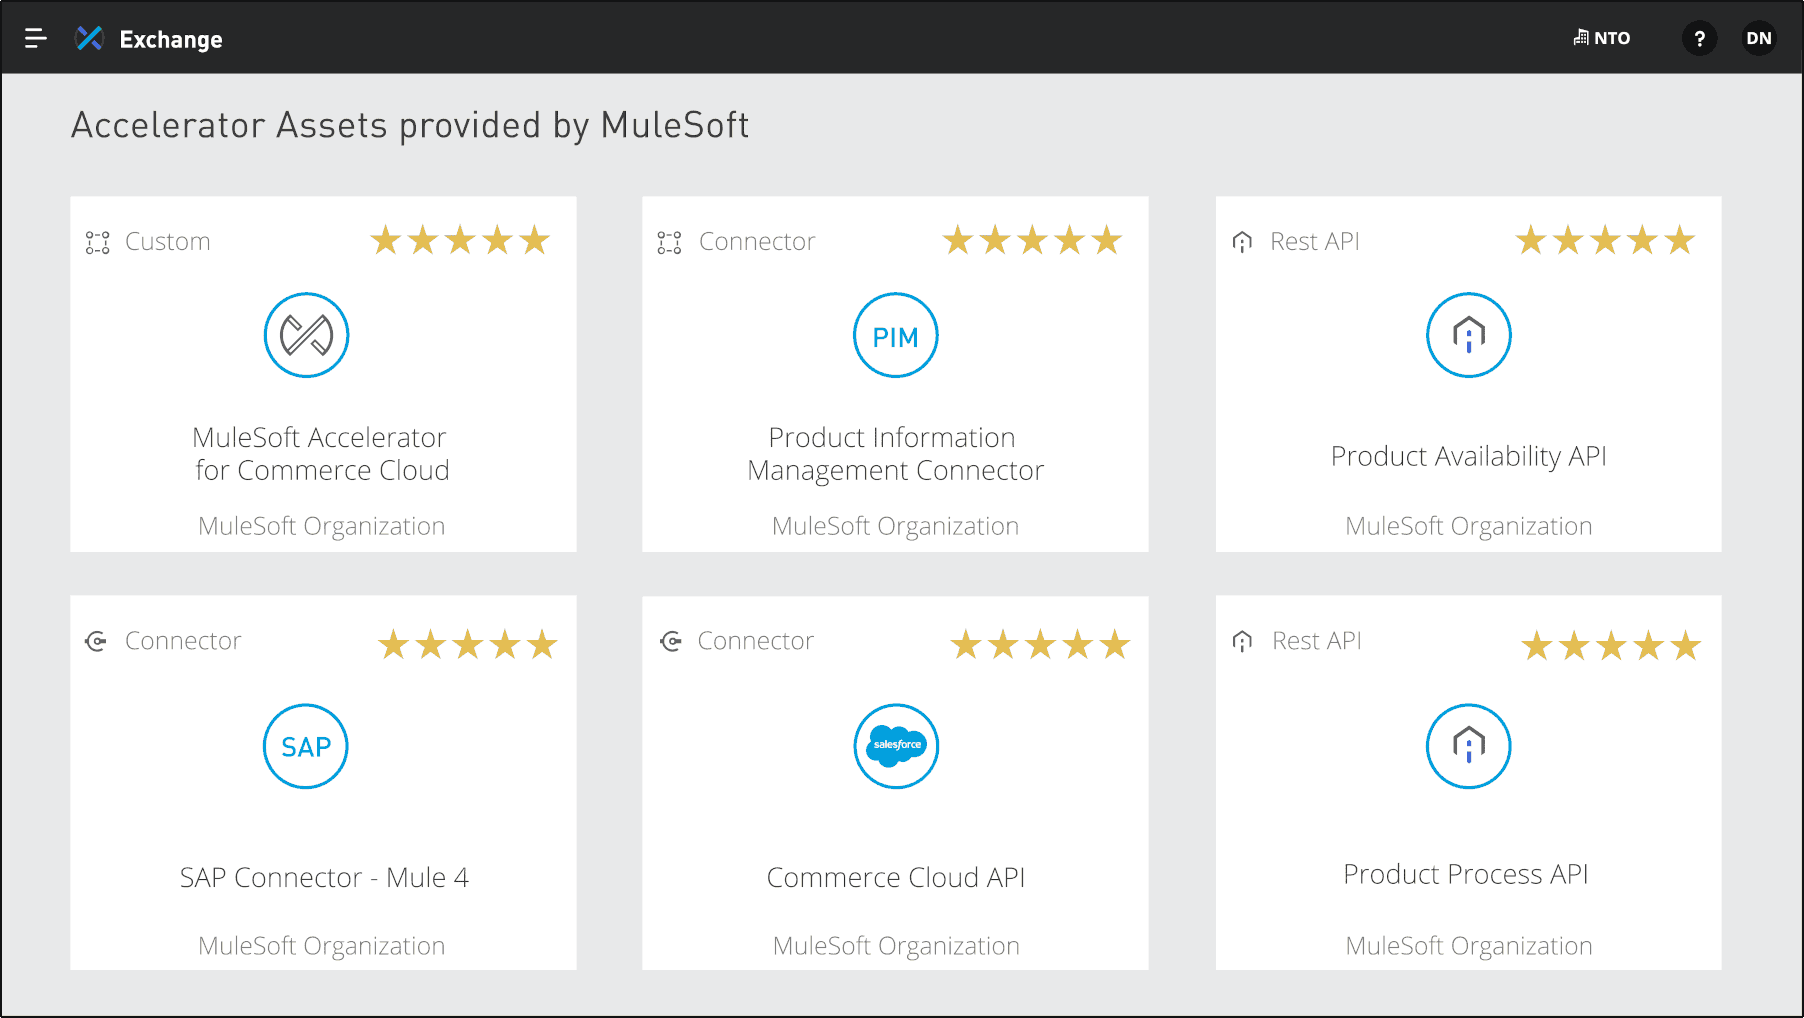 Accelerator Assets provided by Mulesoft